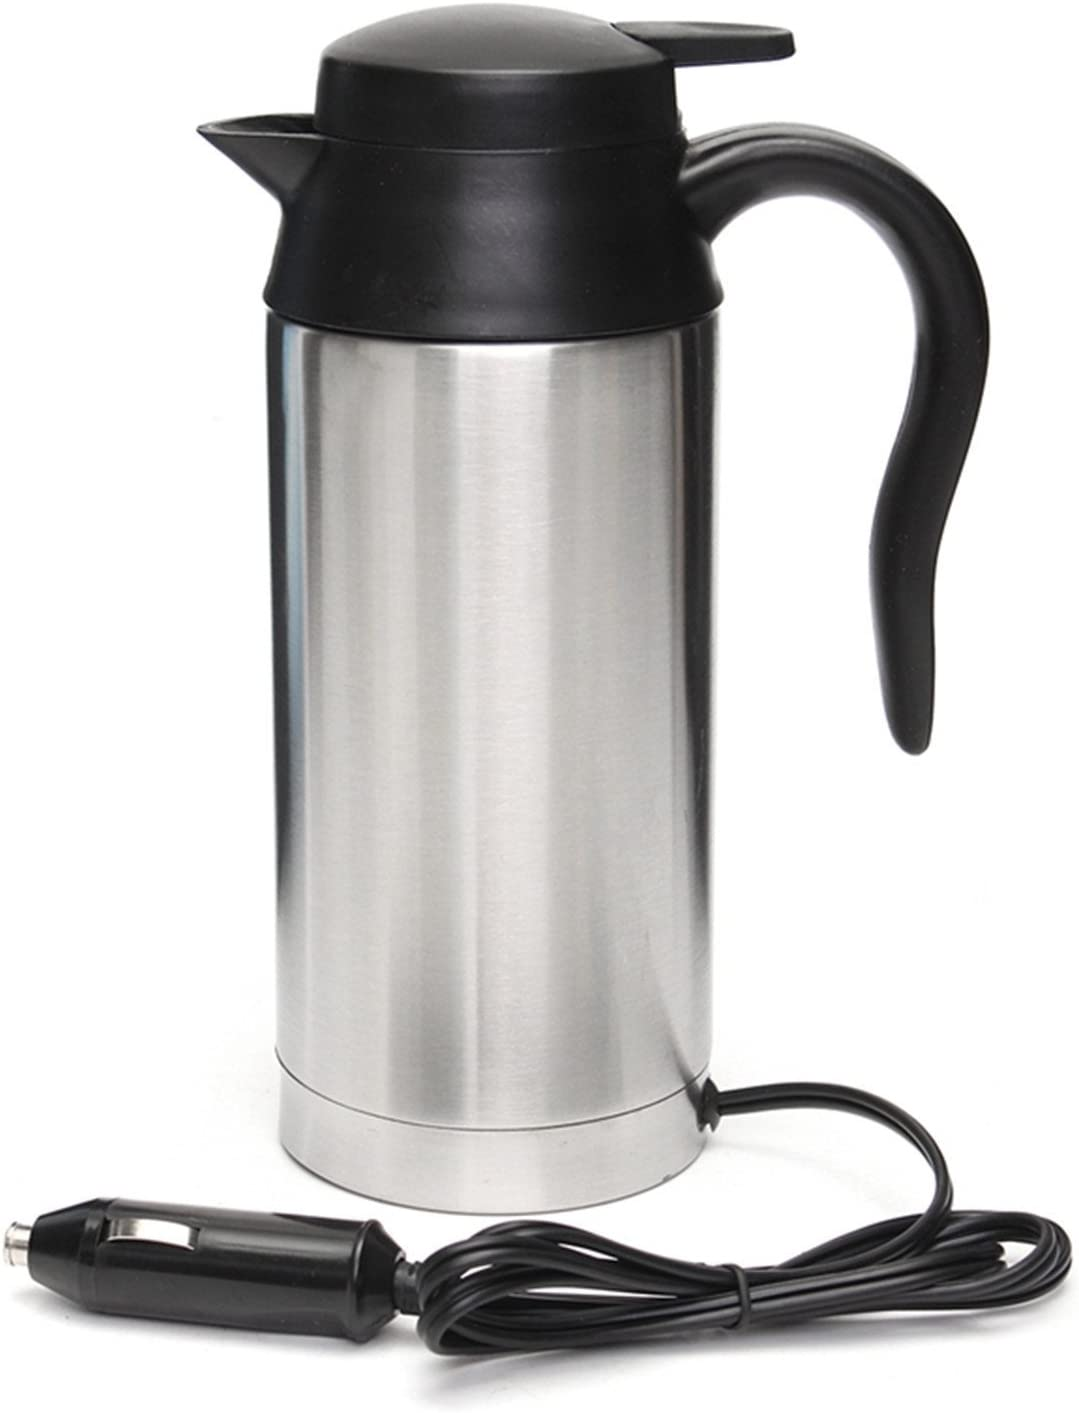 12V 750ml Stainless Steel Car Electric Heating Mug Drinking Cup Travel Kettle Water Boiler for Water Tea Coffee Milk